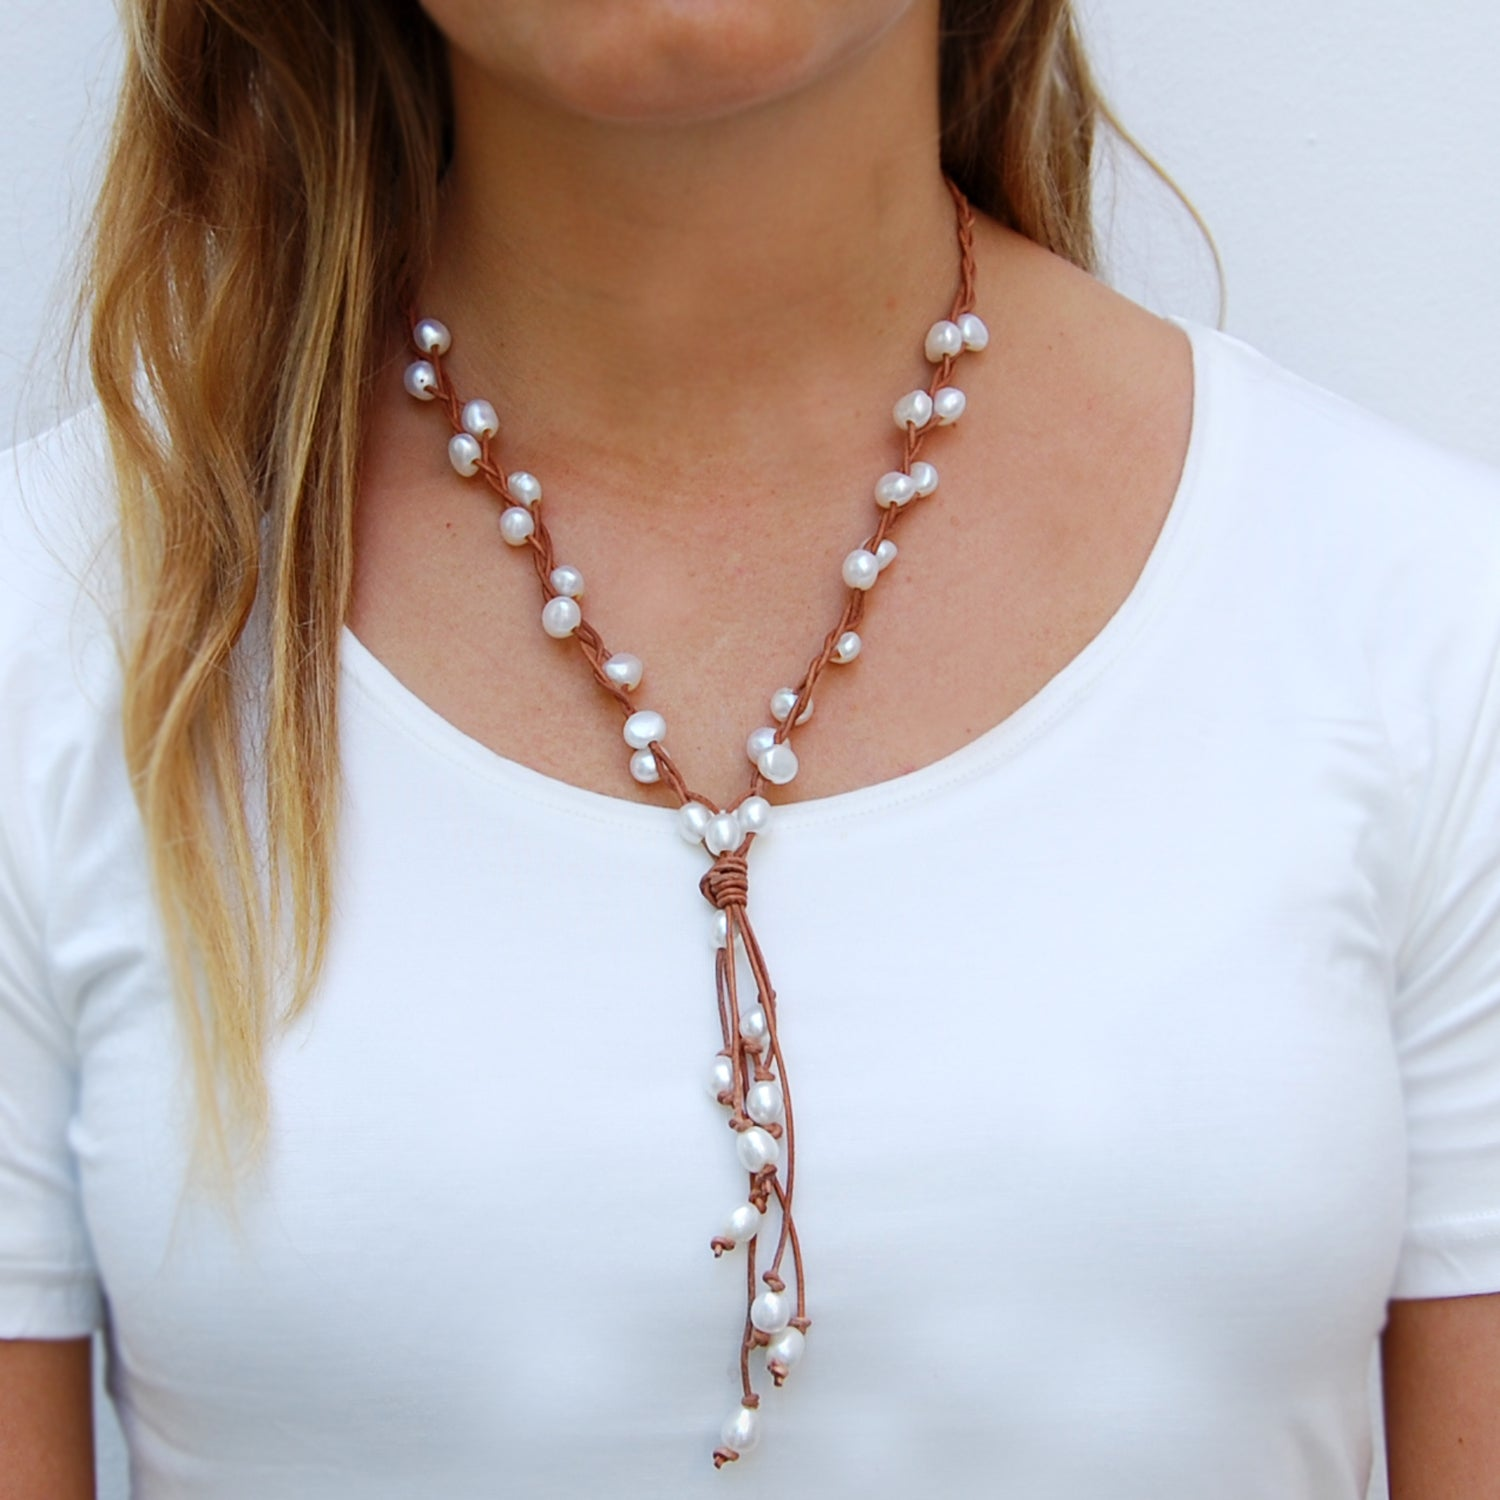 Raw Freshwater Necklace with Long Central Motif and Tassel in Tan and White